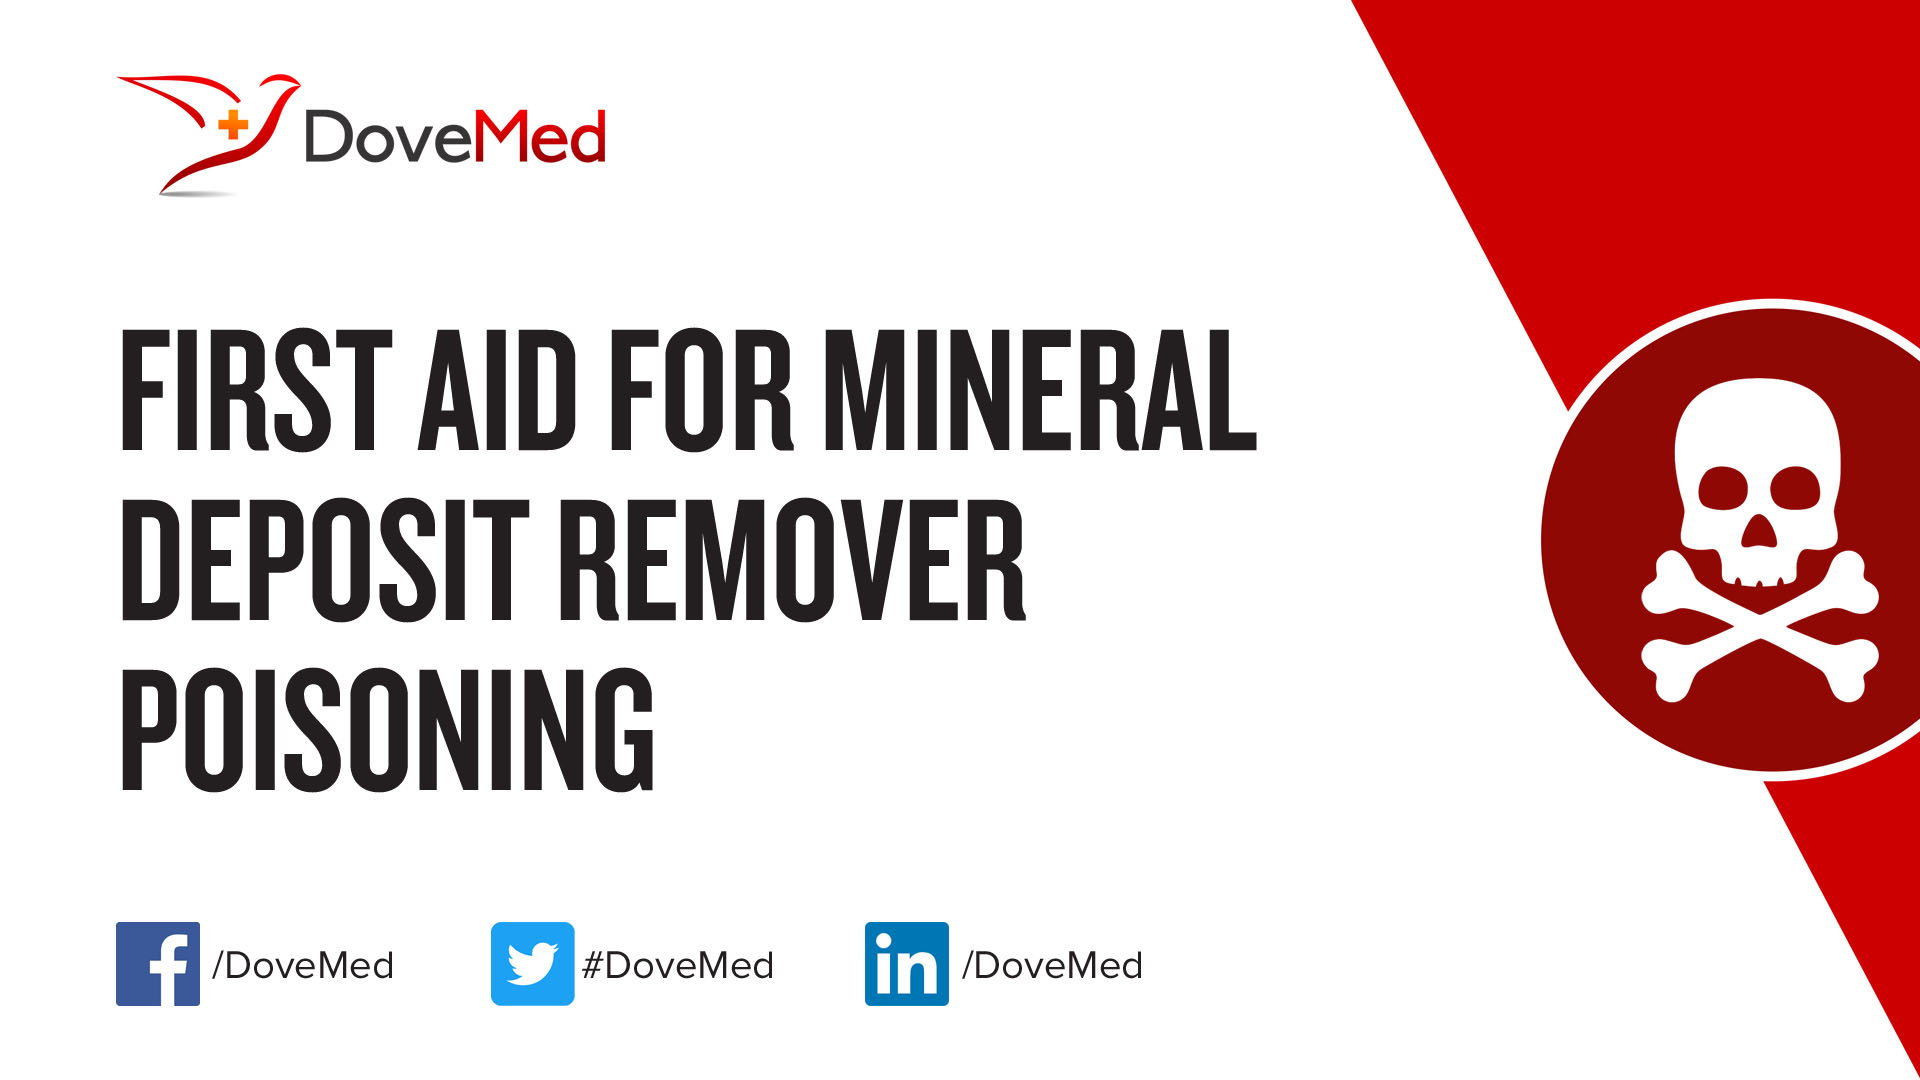 First_Aid_for_Mineral_Deposit_Remover_Poisoning.jpg